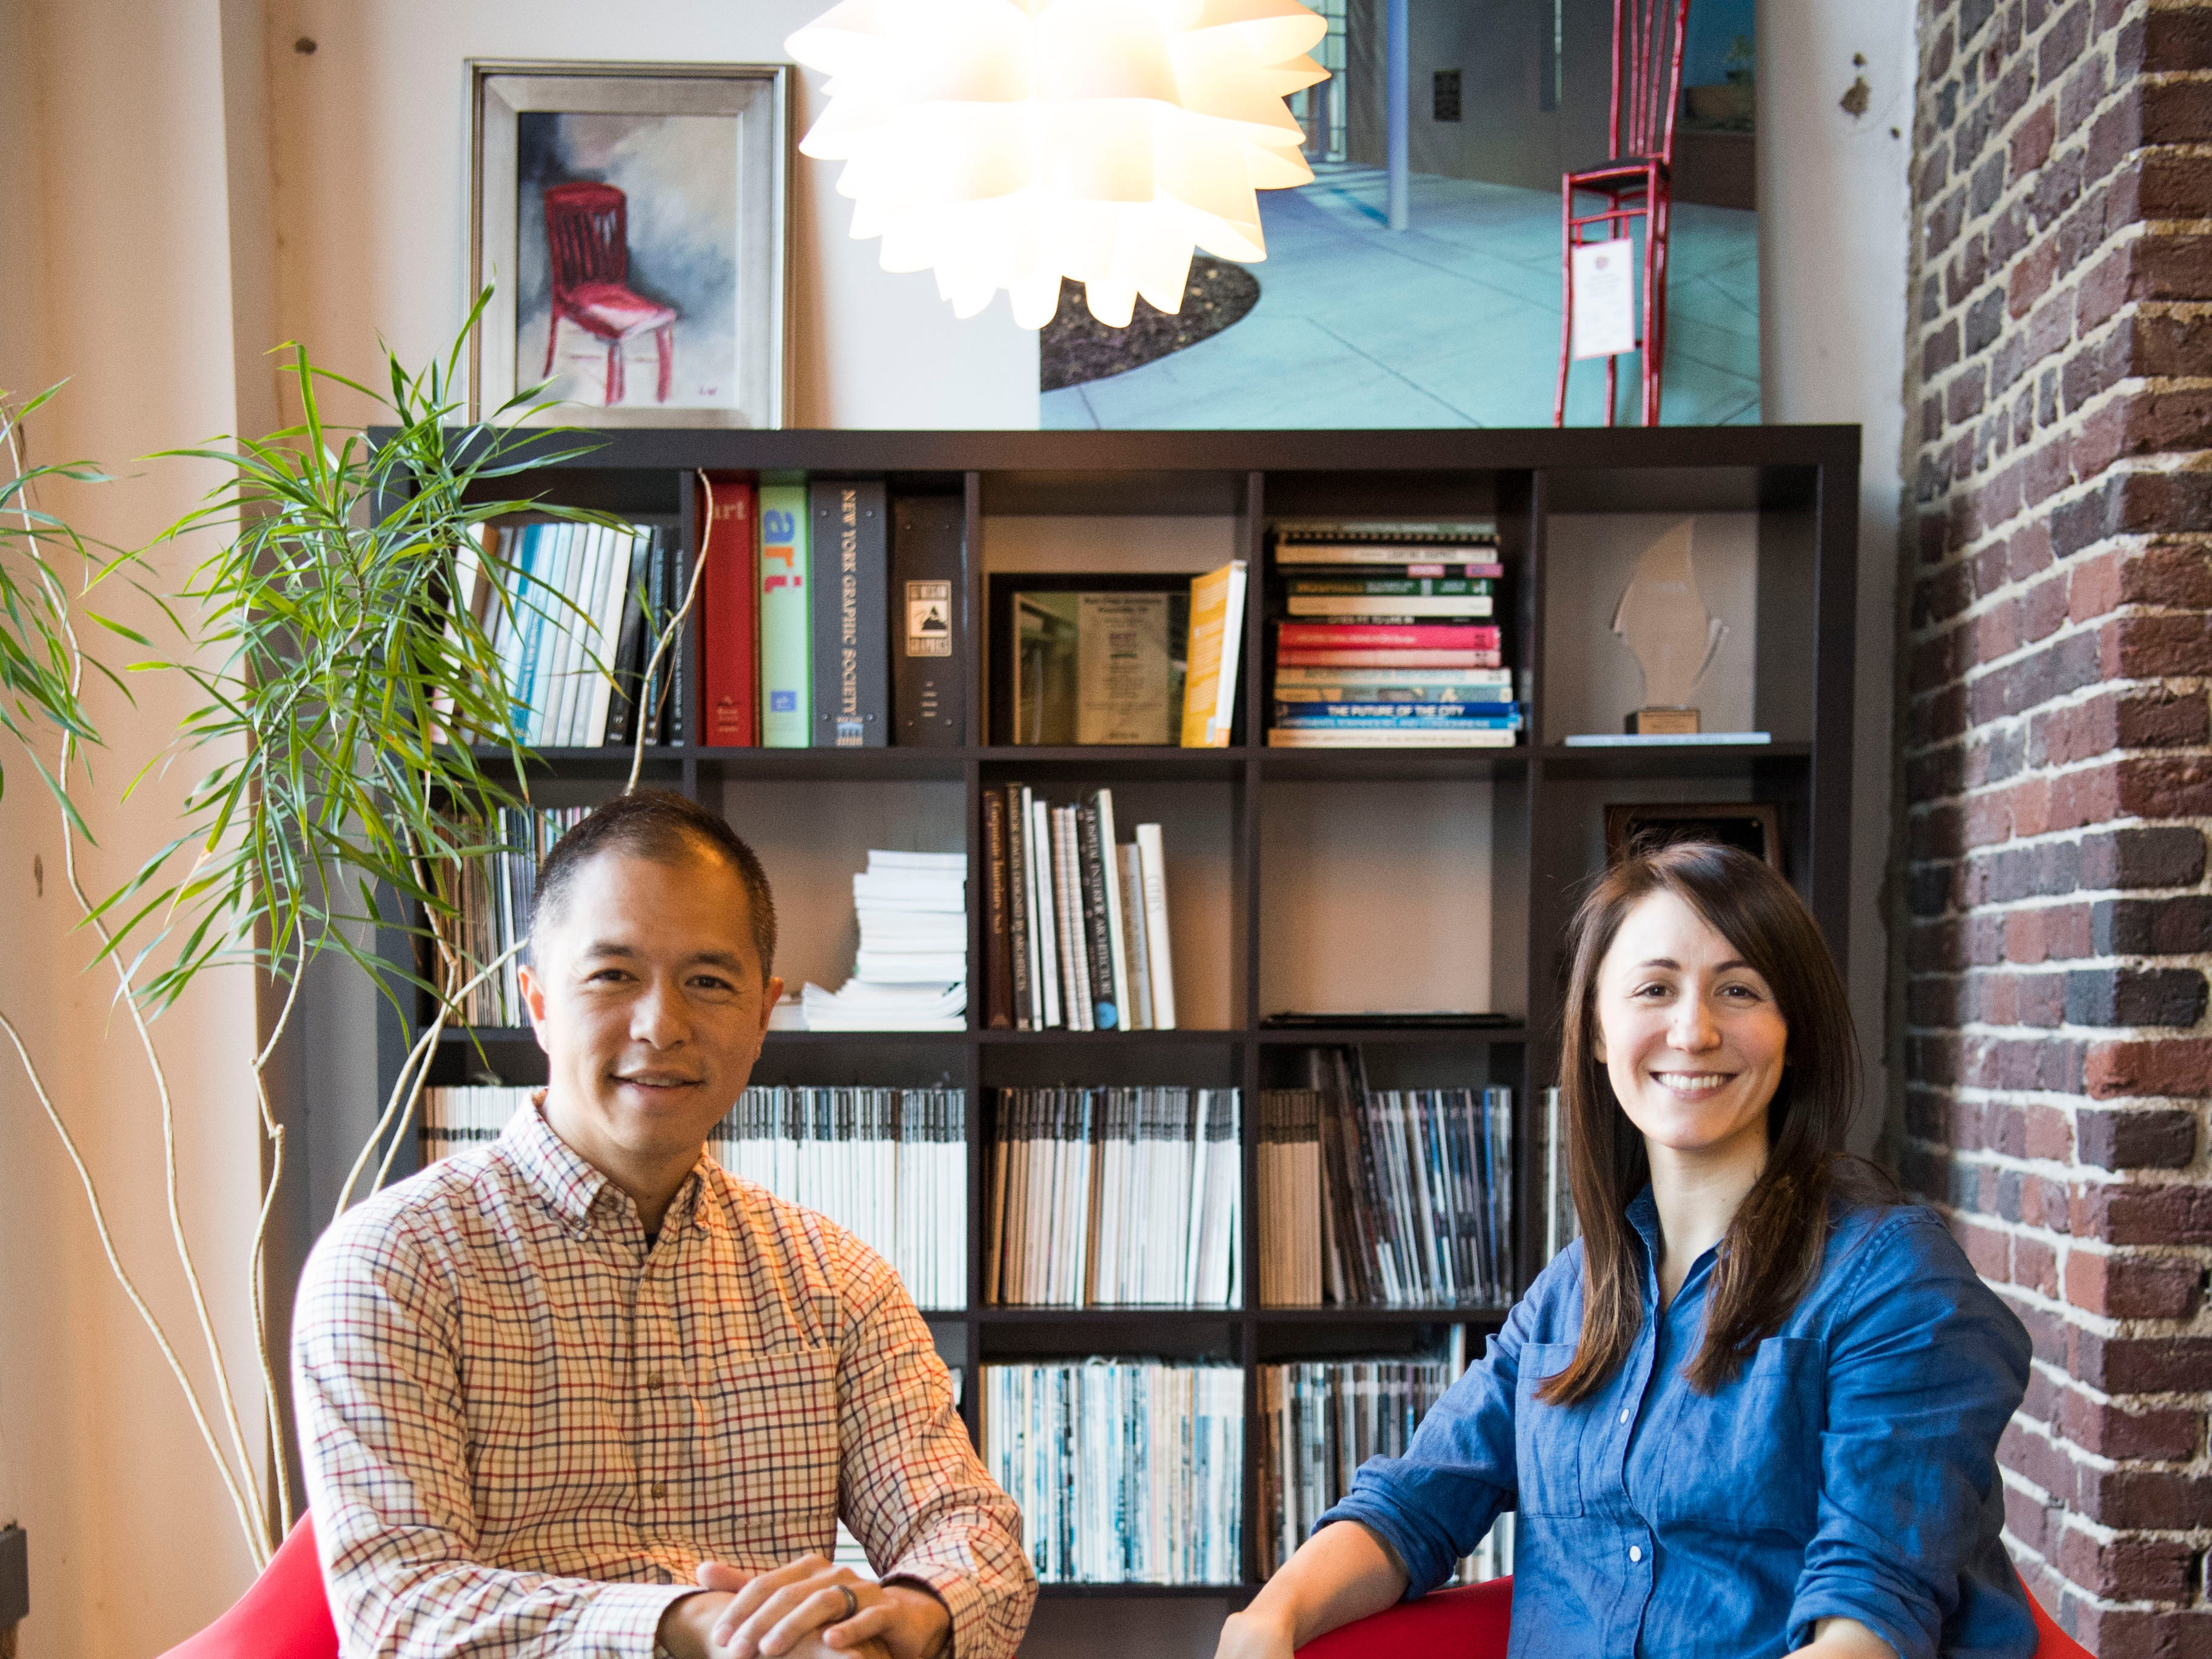 Kevin Ling and his wife Sydney Berry Ling, co-owners of Red Chair Workspaces, pose for a photo in the space Wednesday, Jan. 9,2019.